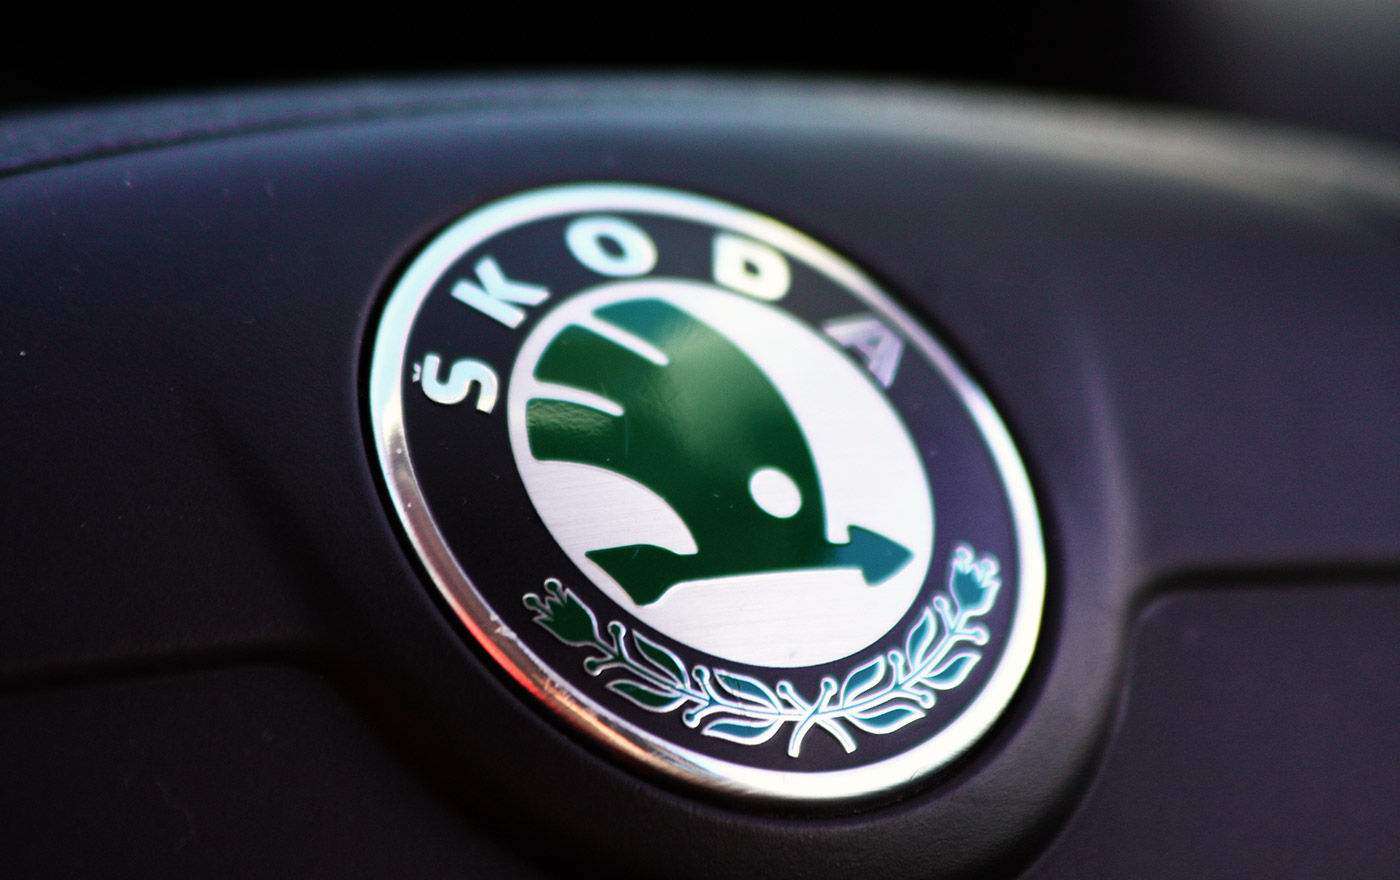 Evolution of the SKODA logo.